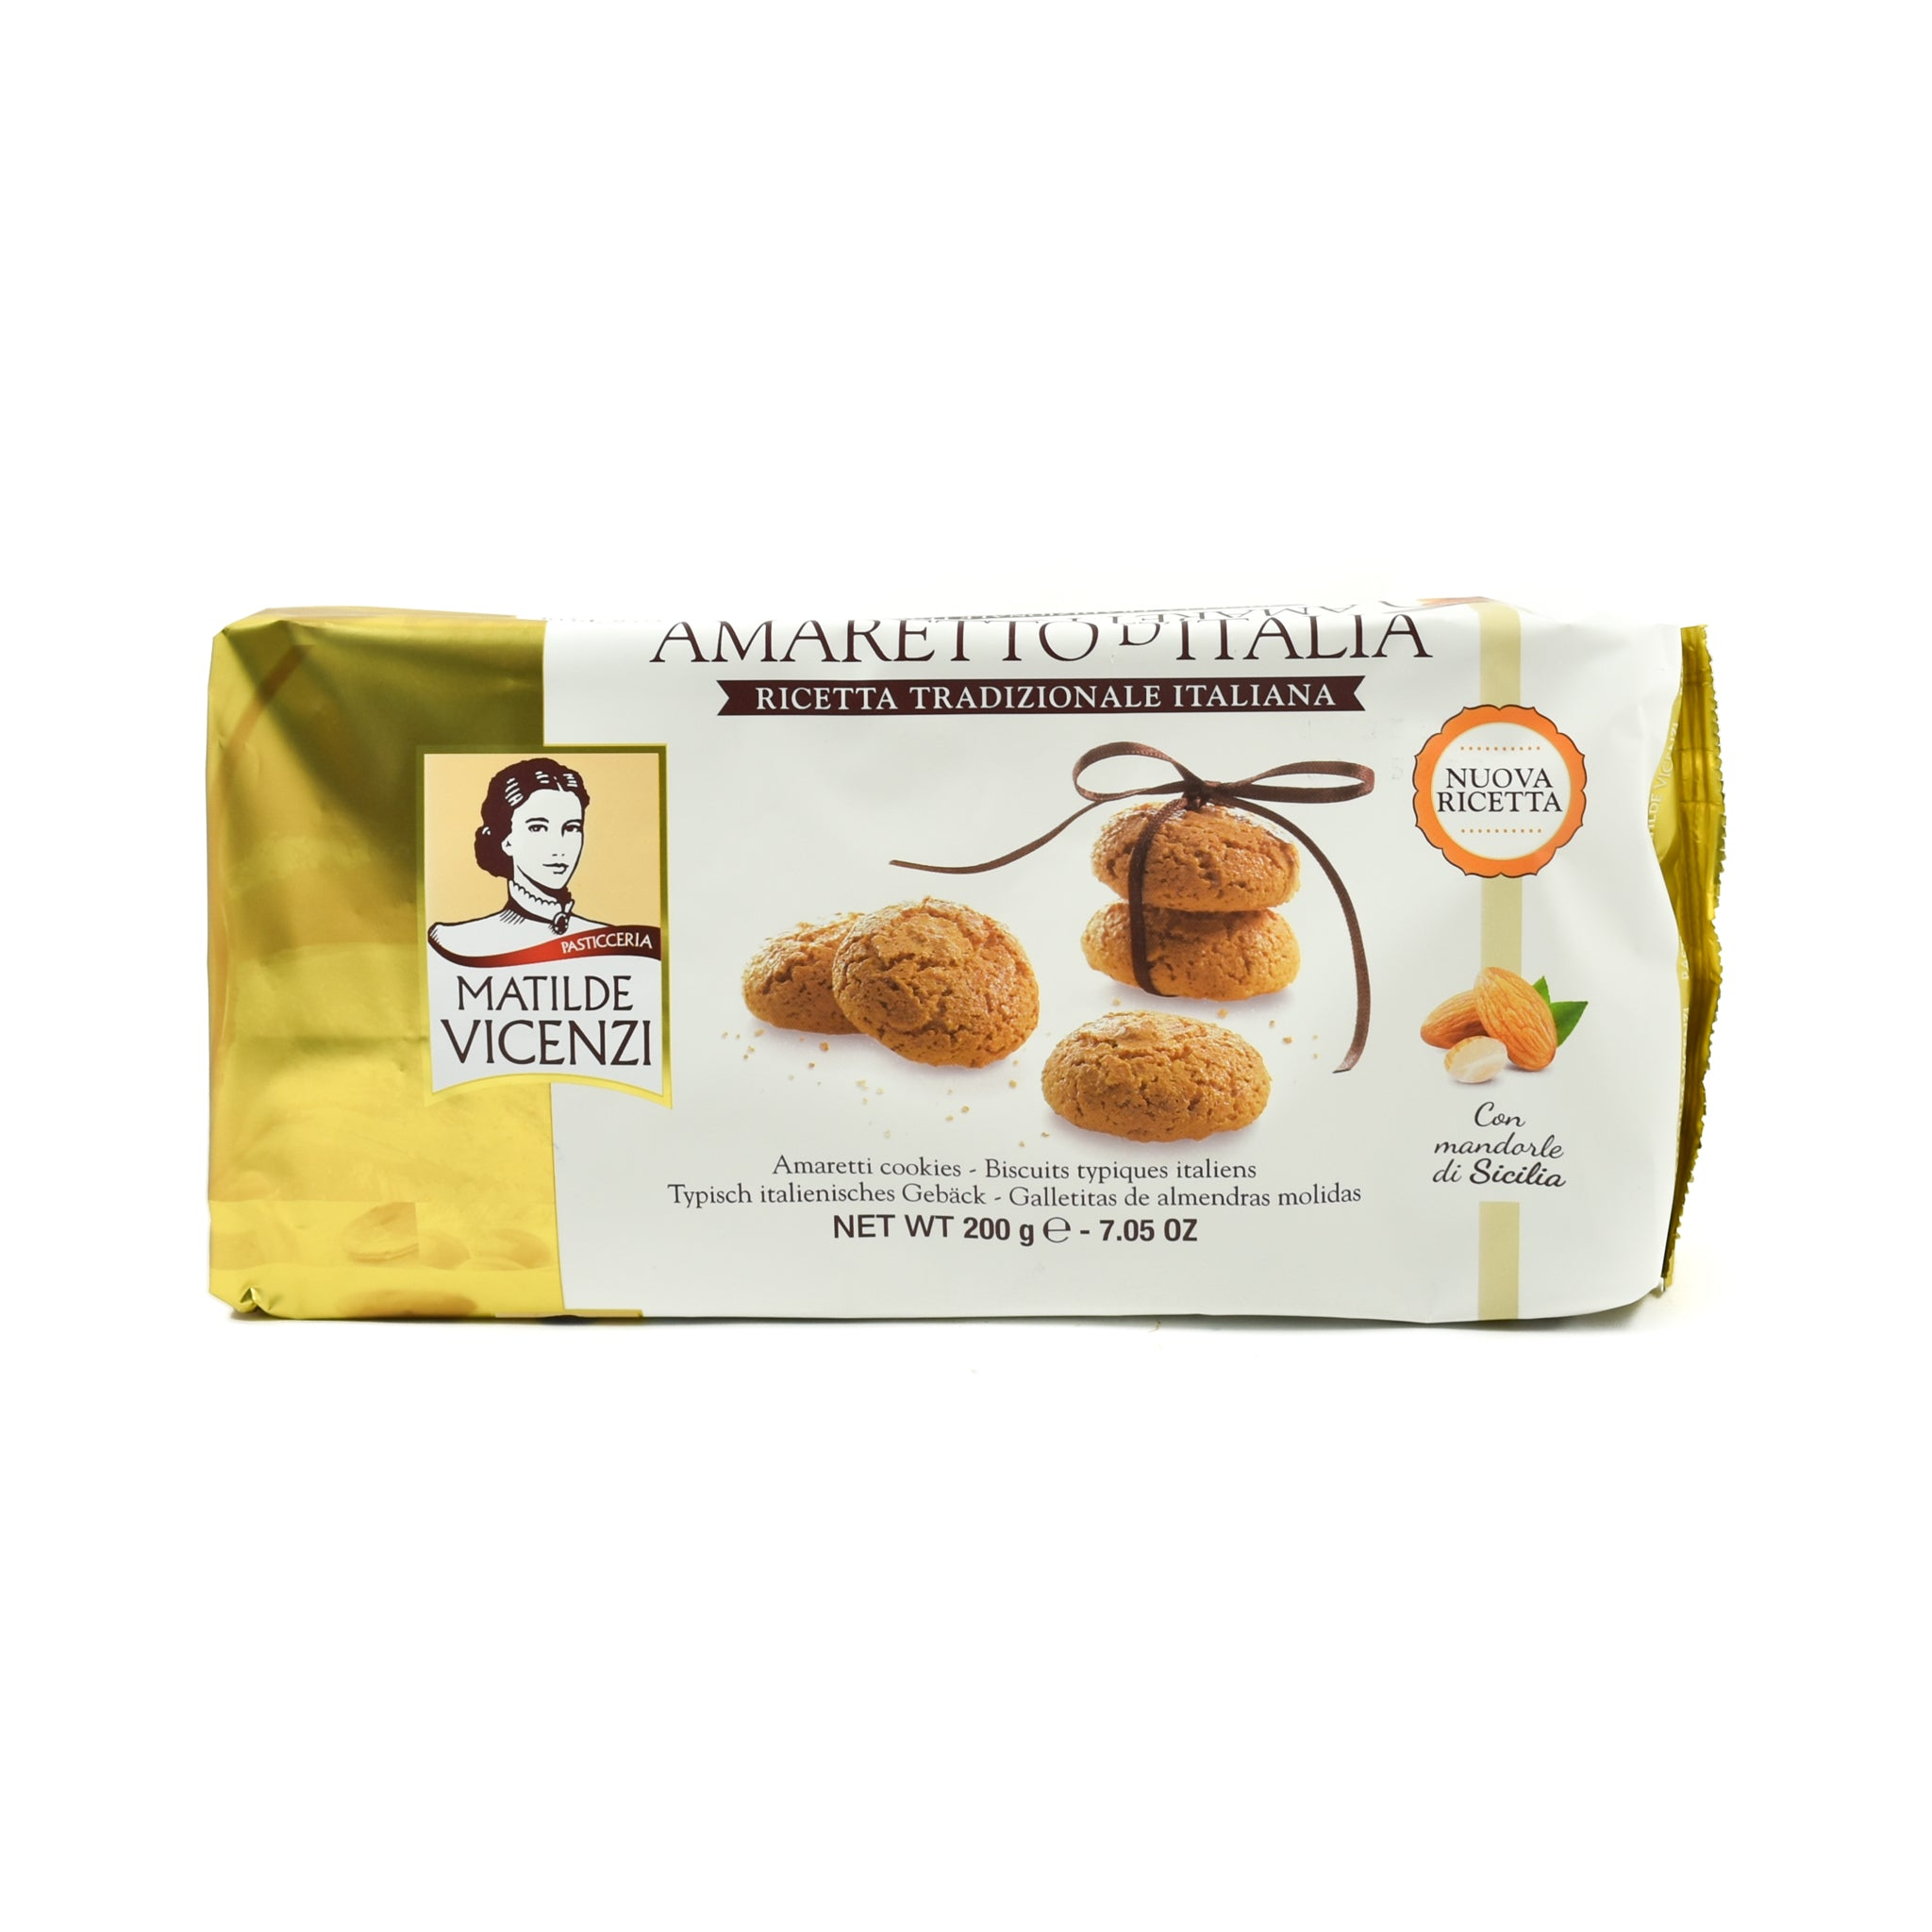 Matilde Vicenzi Amaretti Biscuits 200g Ingredients Chocolate Bars & Confectionery Italian Food